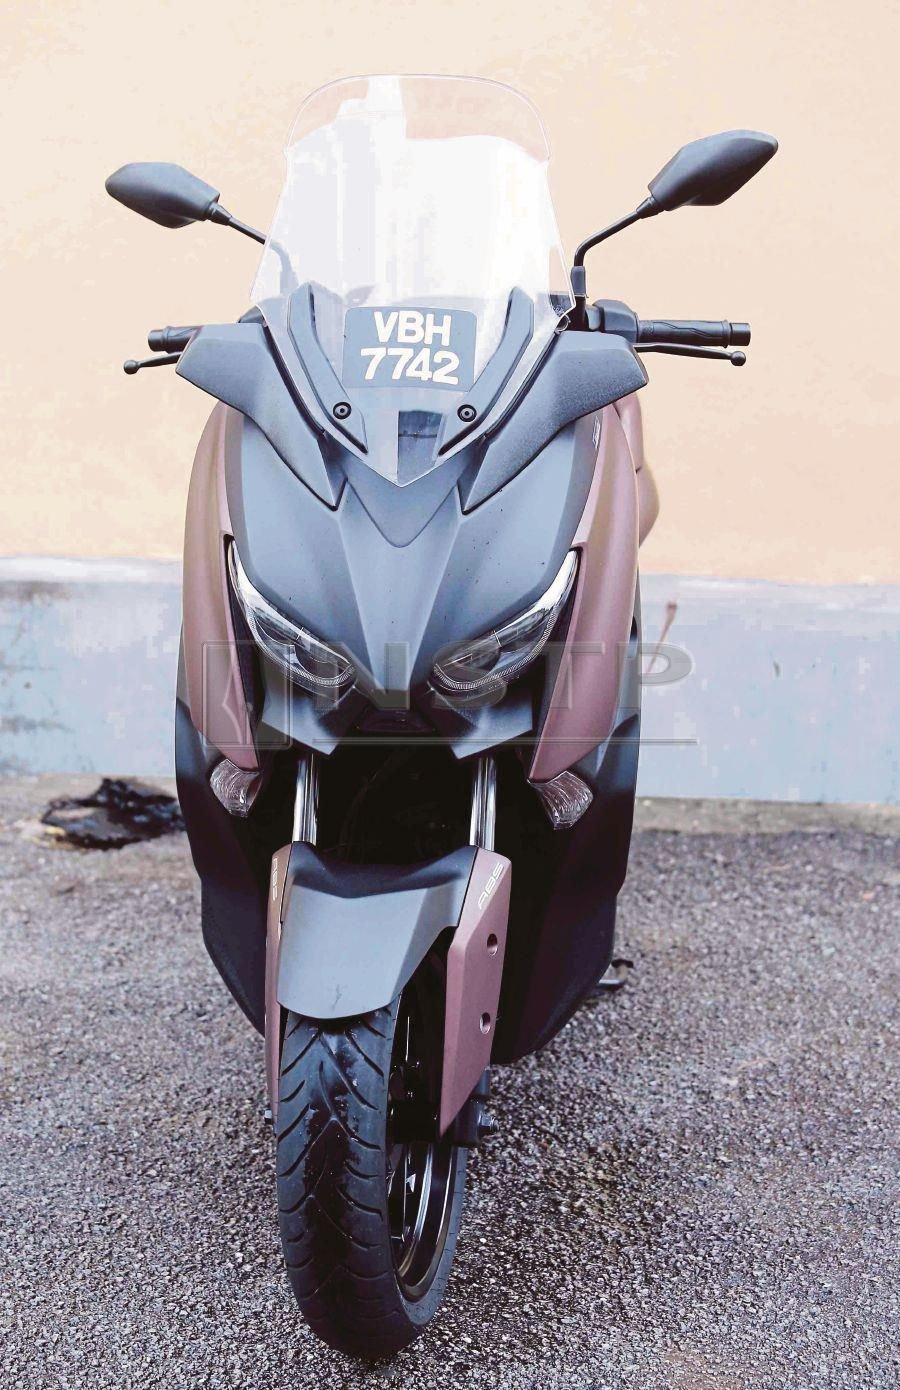 Yamaha X-Max 250 leads the pack   New Straits Times